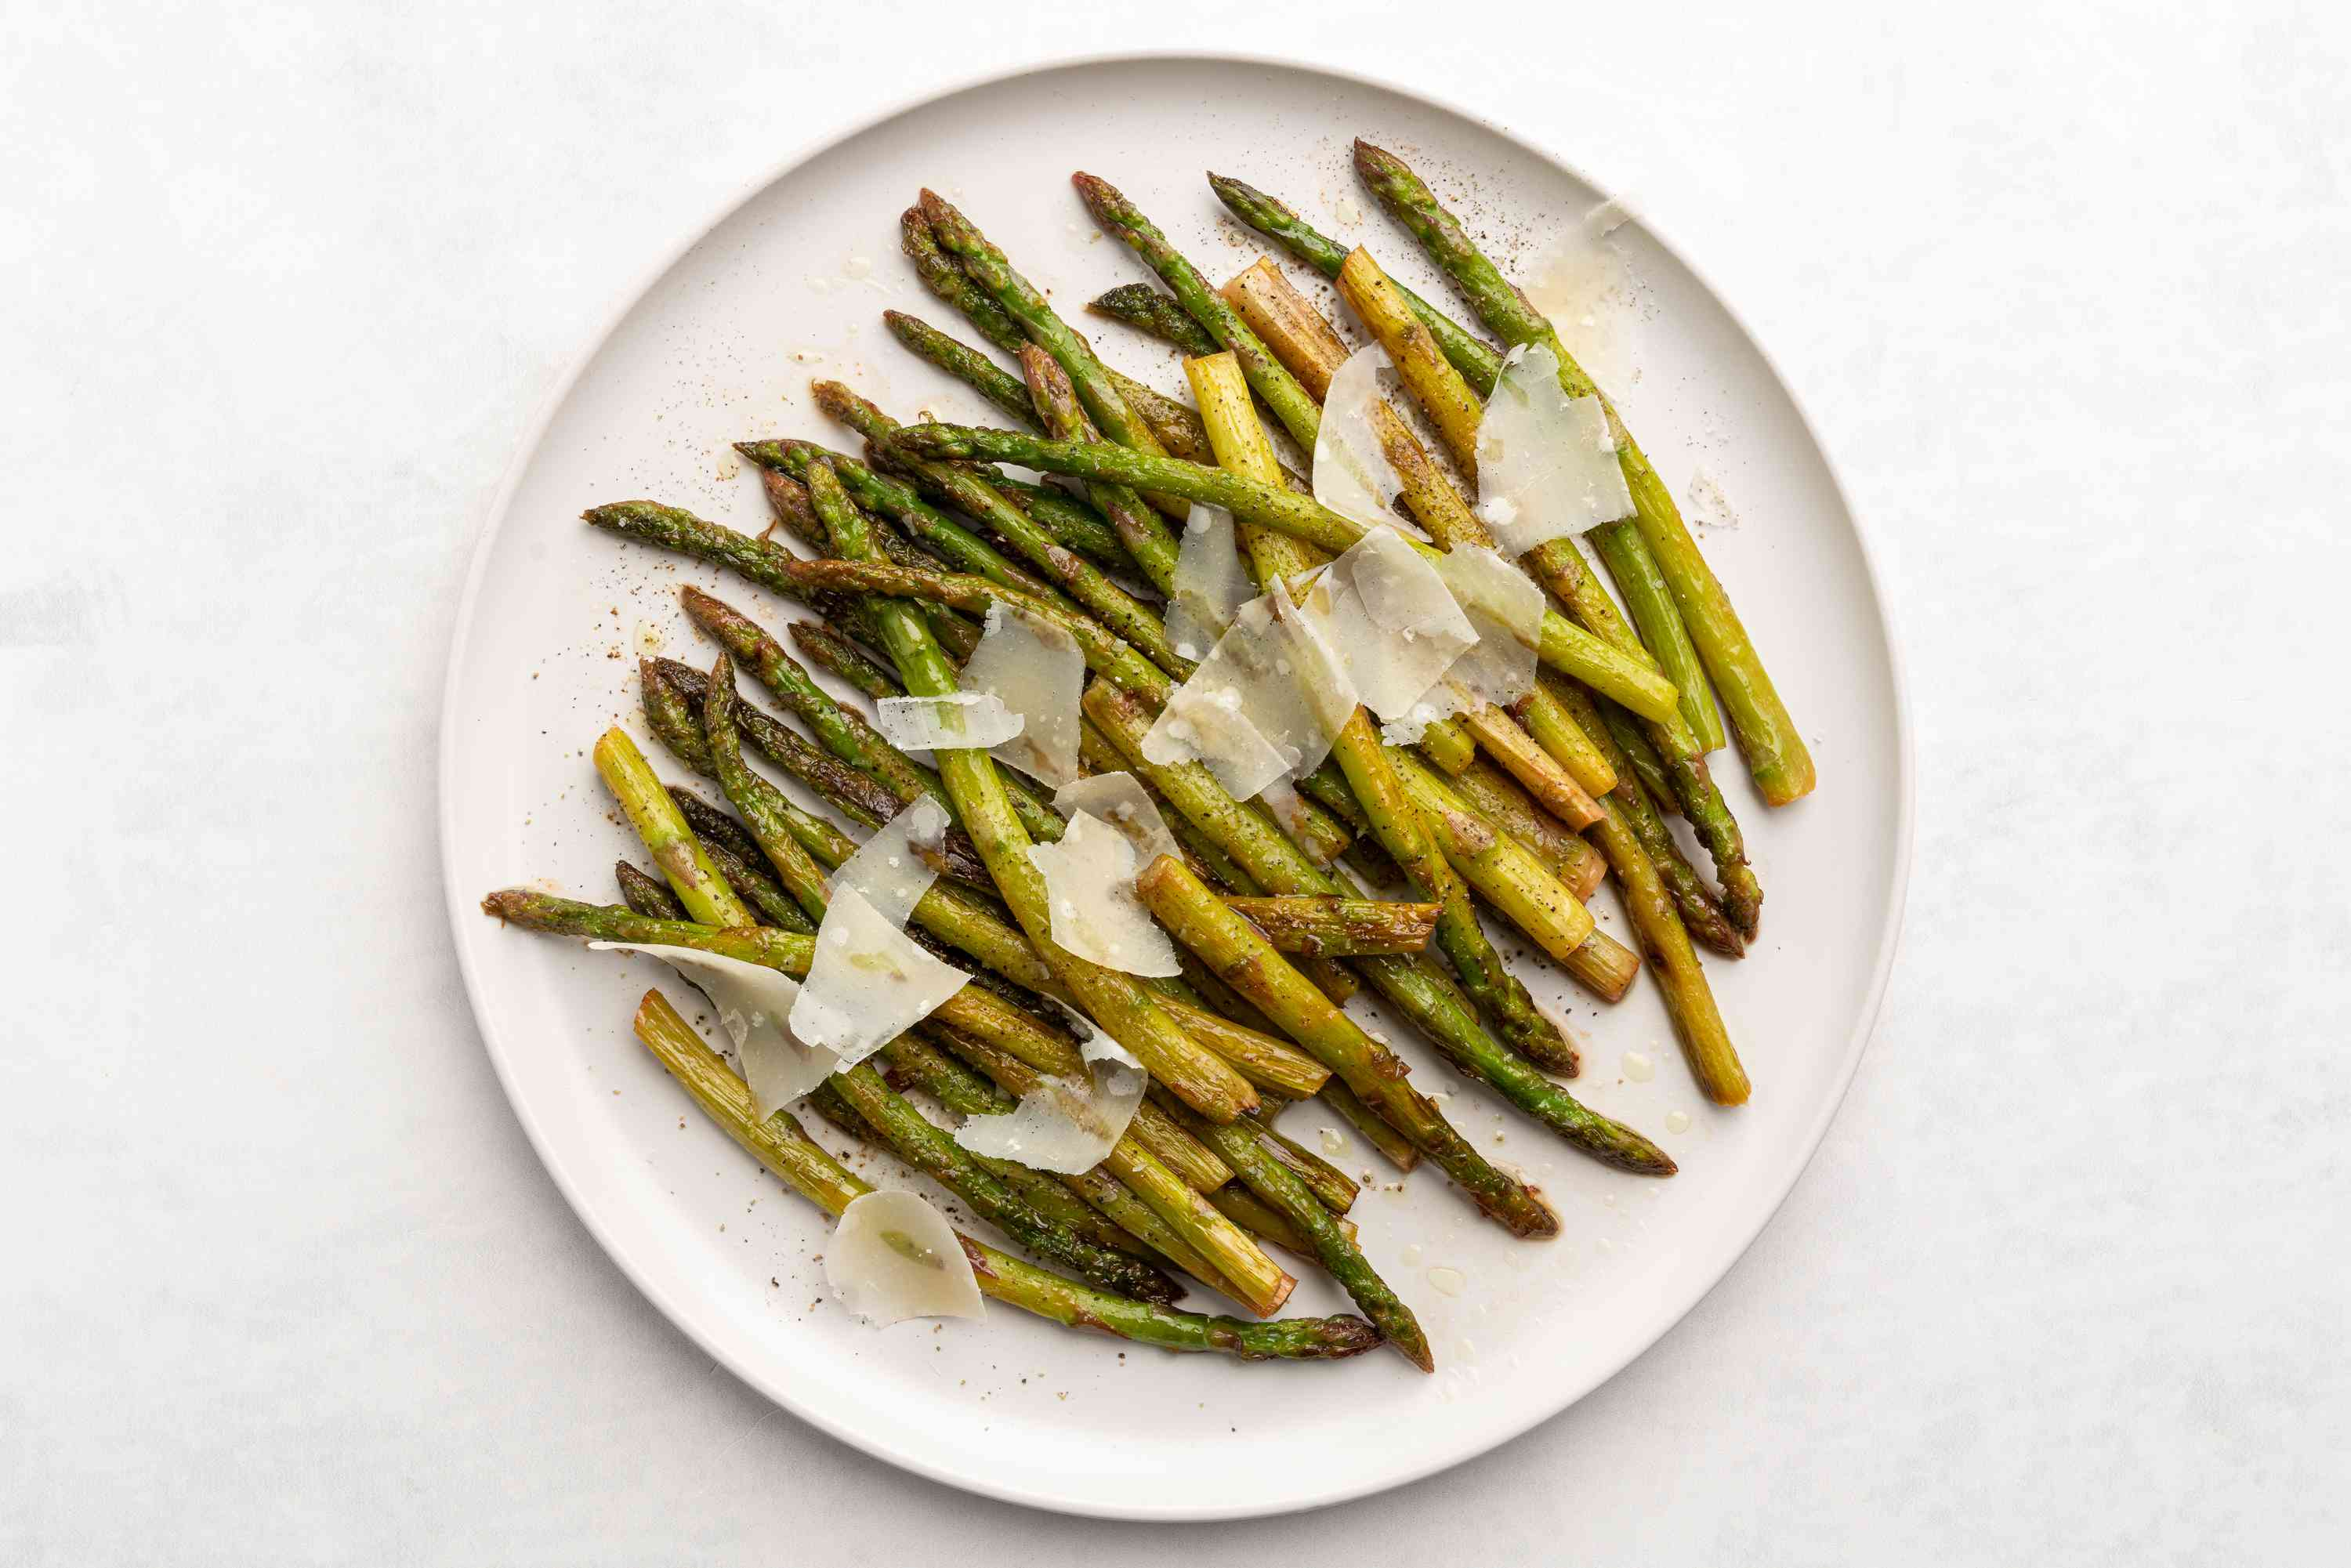 Pan-Roasted Asparagus With Lemon and Garlic, served with shaved Parmesan